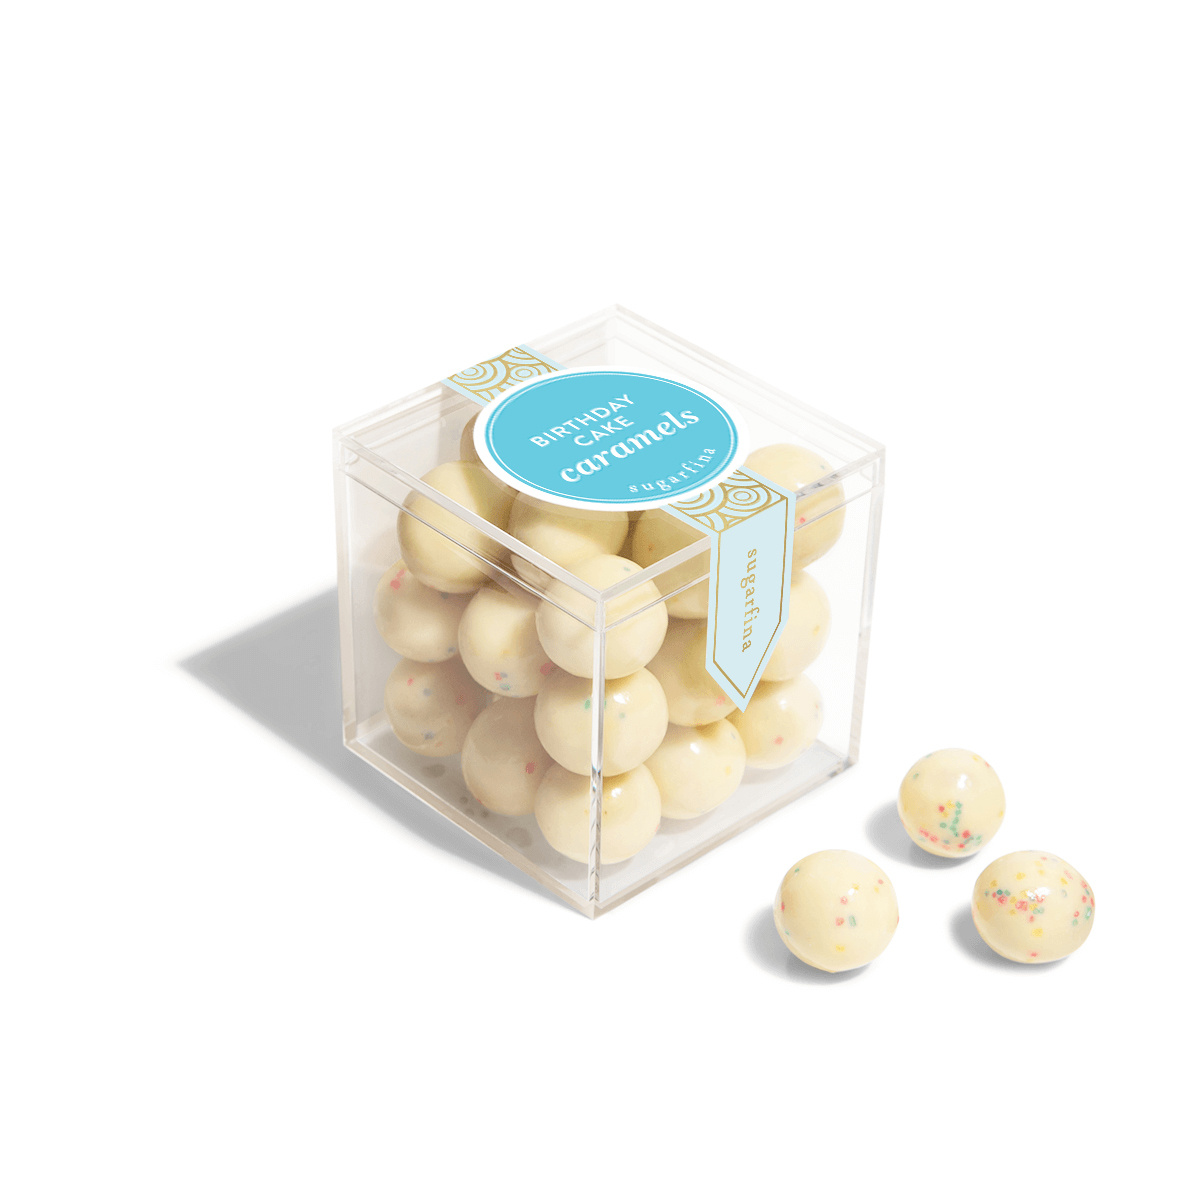 Sugarfina Sugarfina Birthday Cake Caramels Small Cube